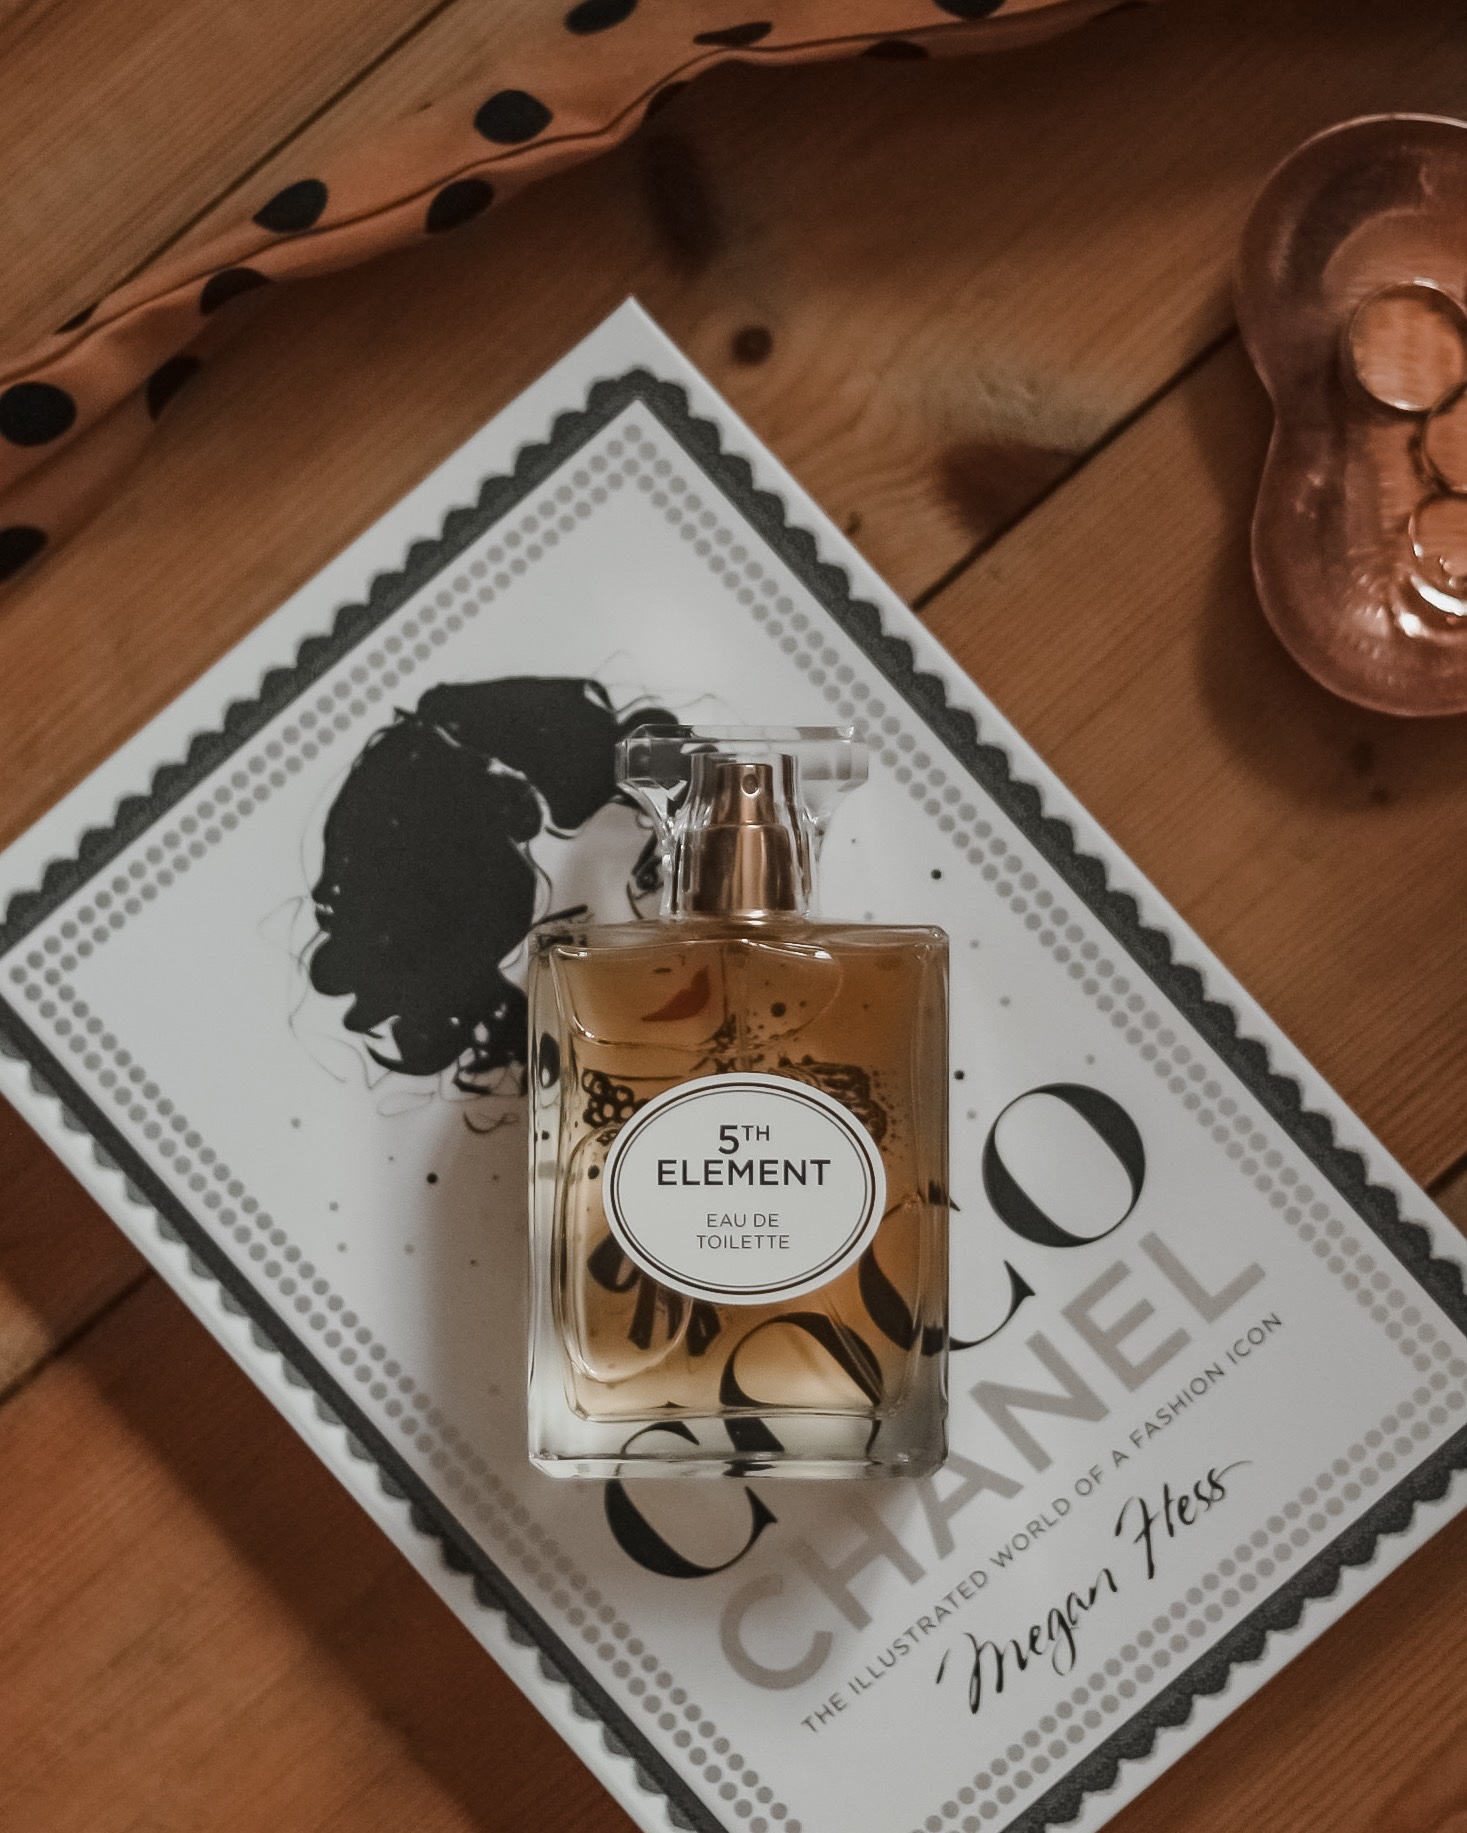 ©Katiewrites.co.uk Perfume, Chanel Dupe, Chanel, Designer, Fragrance, Coco Chanel, Coco Mademoiselle Dupe, Cheap Chanel Perfume, Bargain, Beauty Bloggers, Beauty Bargains, UK Bloggers, Katie Writes, katiebwrites, Katie Writes Blog, Derbyshire, Chanel No5 Dupe, Cheap Chanel No.5